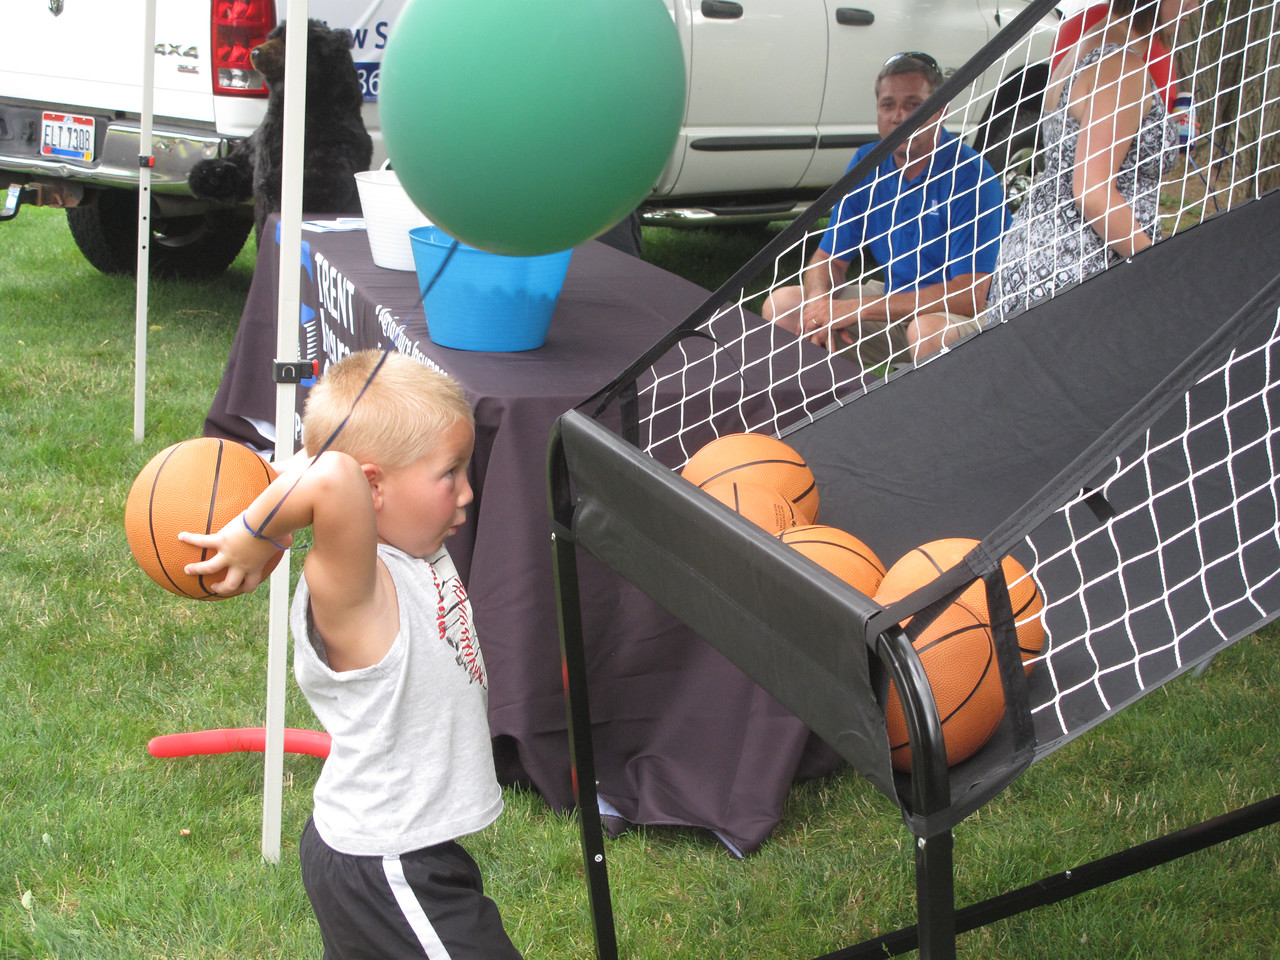 ELIZABETH DOBBINS / GAZETTE Jaxson Musser, 4, of Sterling Township, tests his basketball at the Village of Seville Bicentennial Celebration Sunday afternoon.